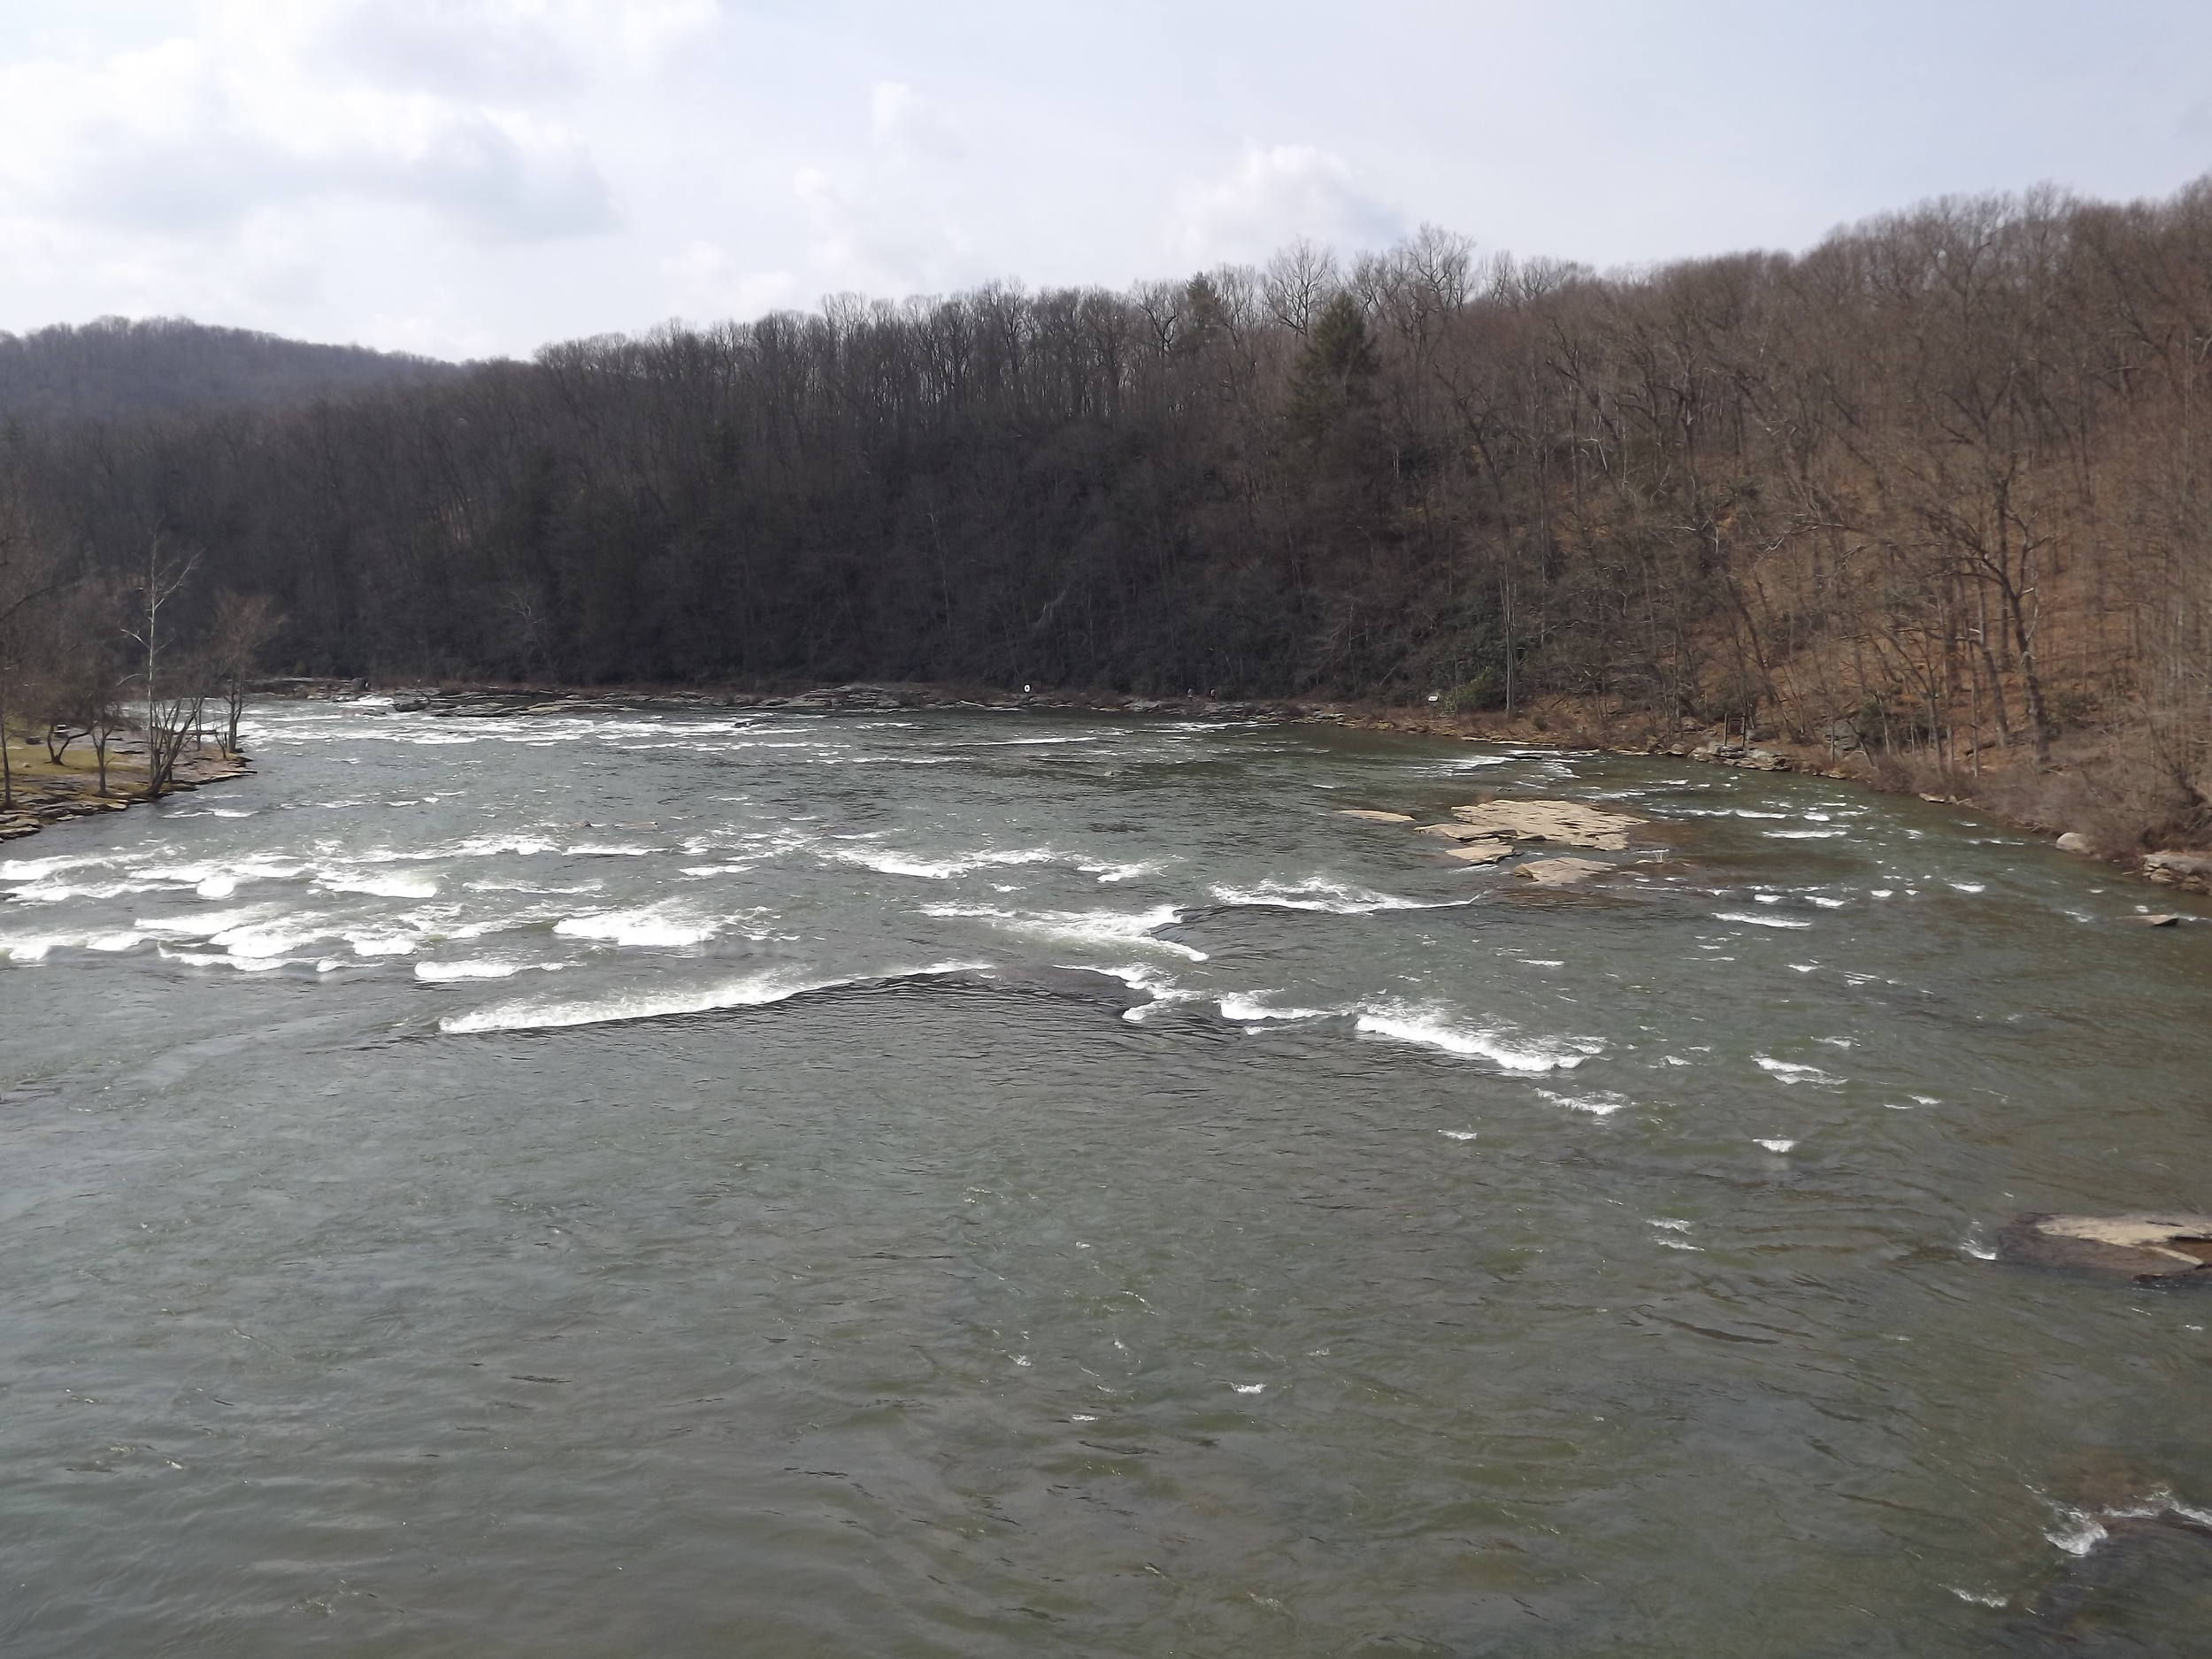 I took this picture while standing on the bike/walking bridge on the Ohiopyle side of the Ferncliff peninsula. This section of the river is directly above the main falls, which are about 100 yards around the bend downriver in the photo.